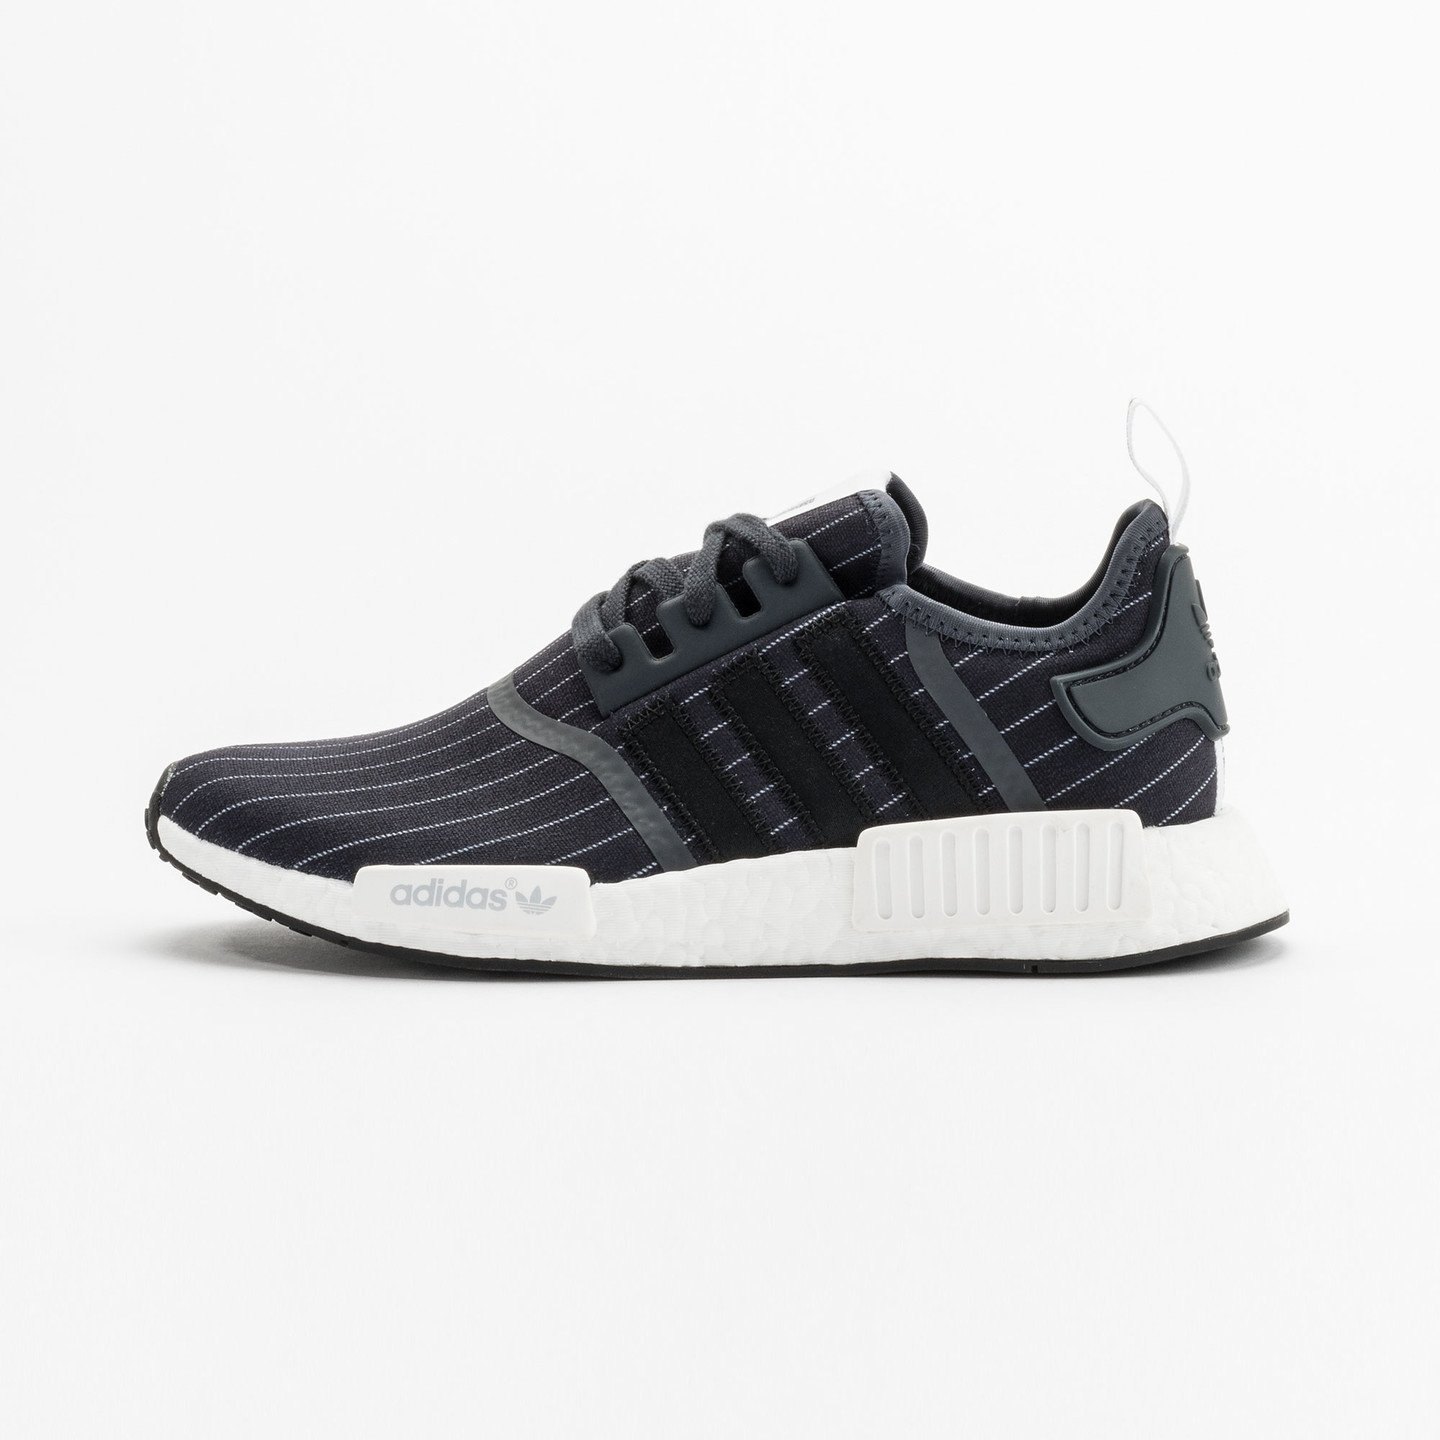 Adidas NMD x Bedwin & the Heartbreakers Night Grey / Core Black / Ftwr White BB3124-37.33